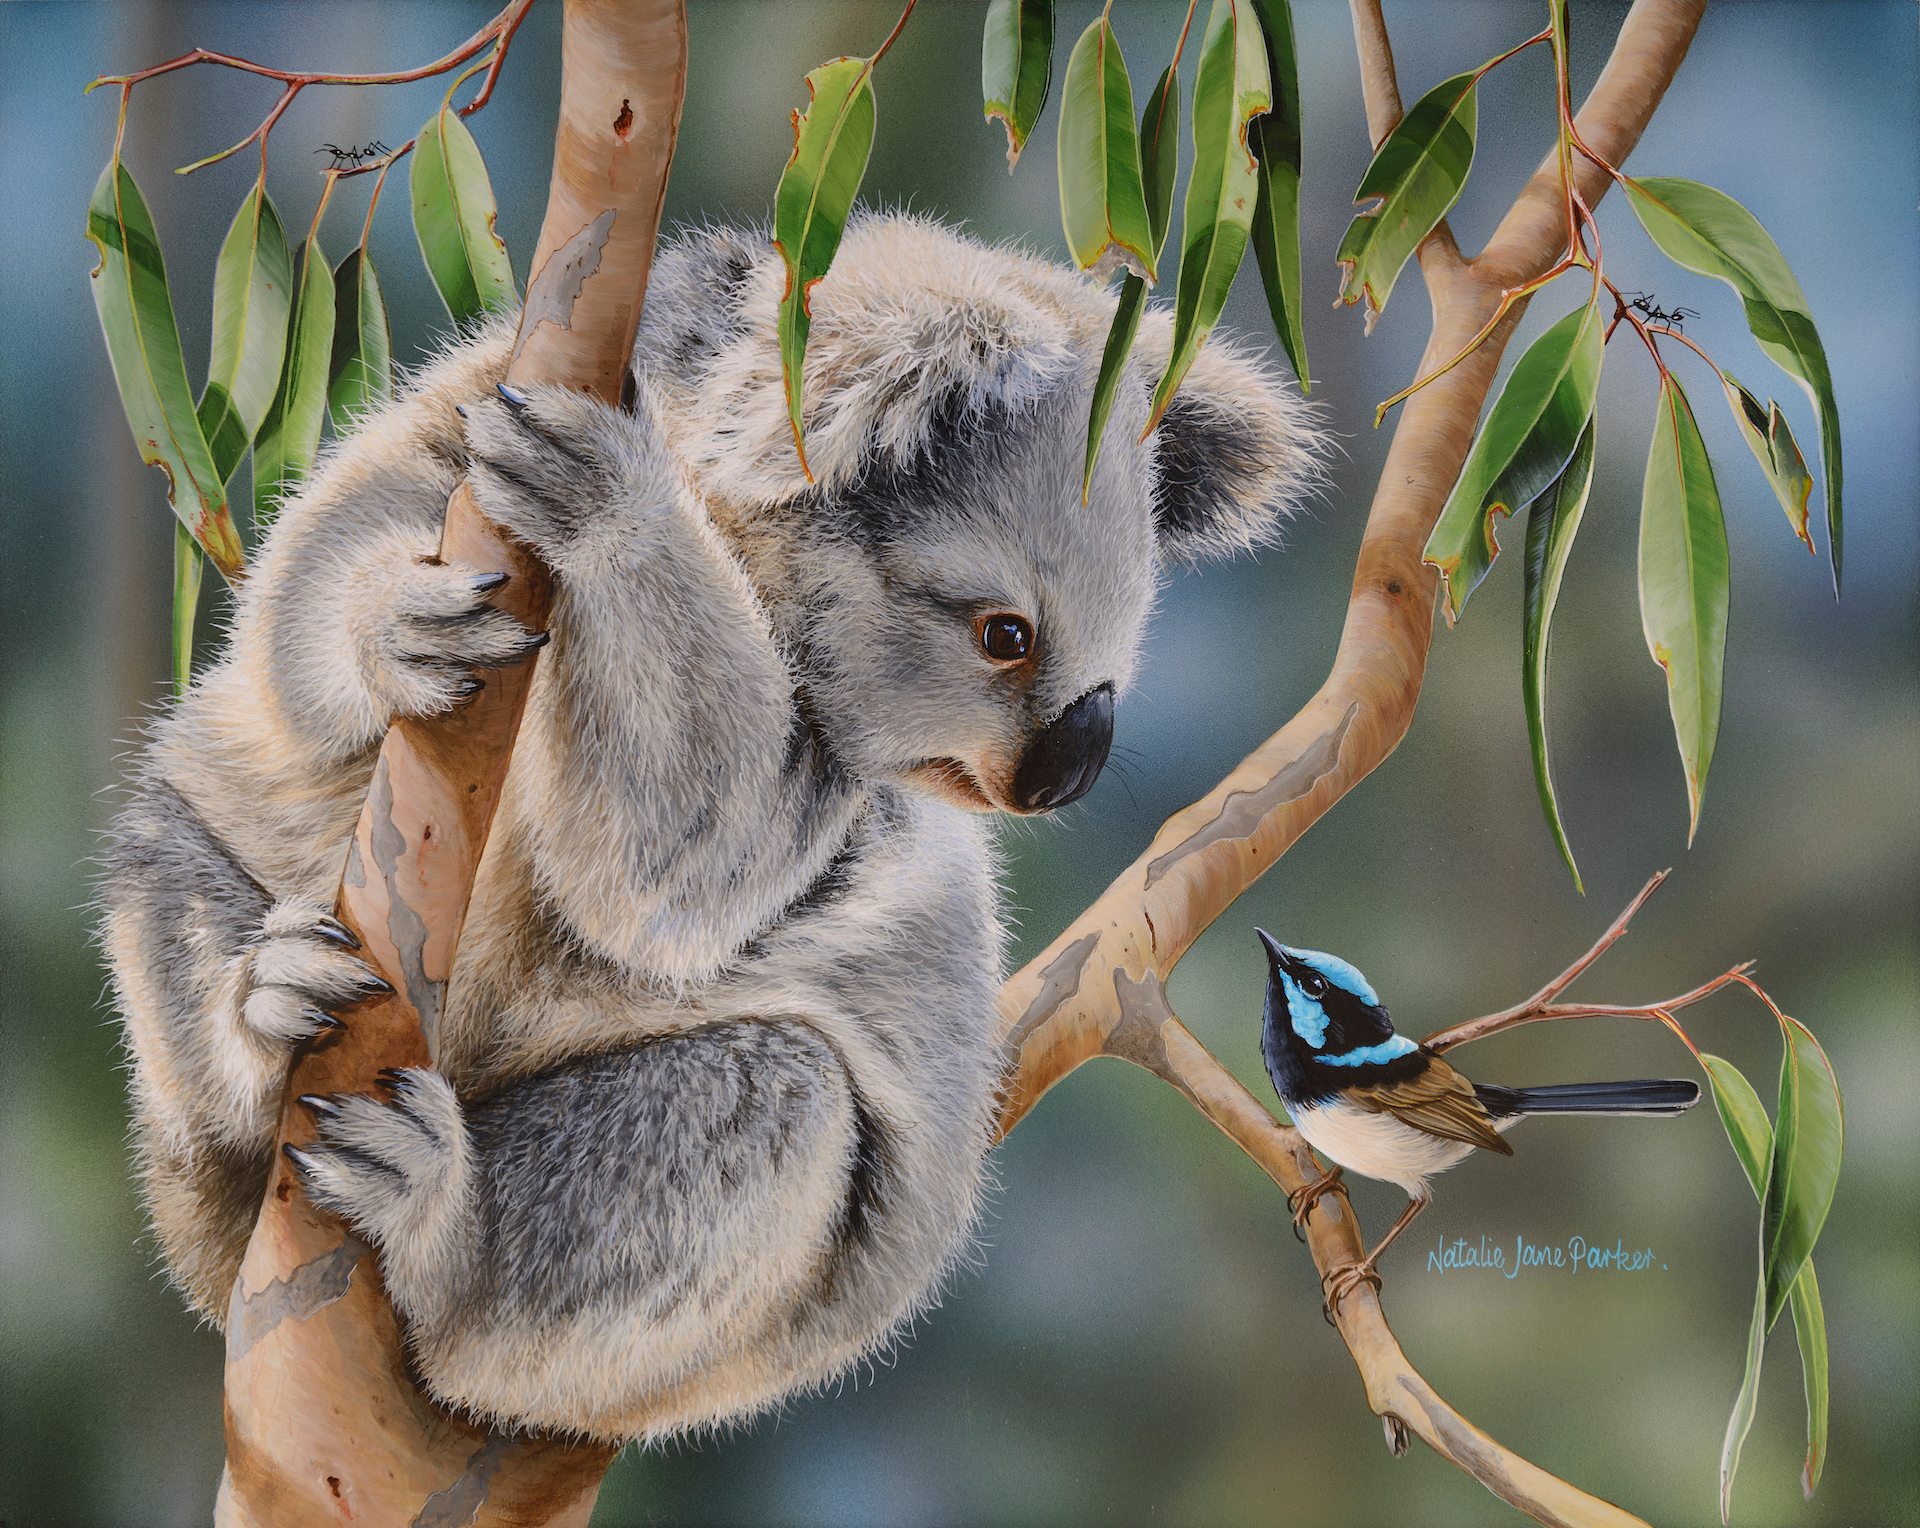 Aussie greeting   juvenile koala and superb fairy wren natalie jane parker australian native wildlife zfn2yx